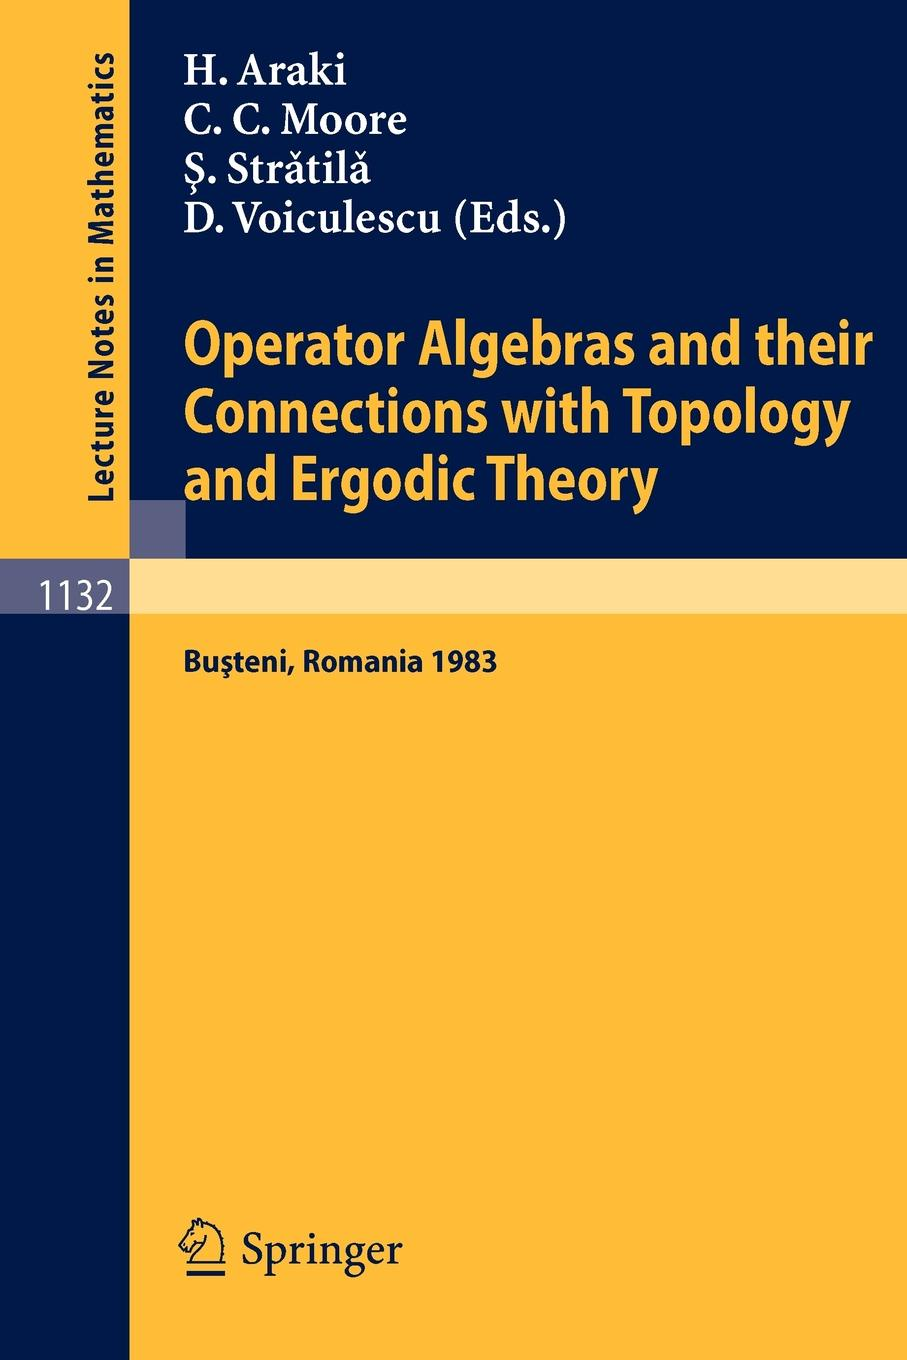 Operator Algebras and their Connections with Topology and Ergodic Theory. Proceedings of the OATE Conference held in Busteni, Romania, August 29 - September 9, 1983 цена и фото